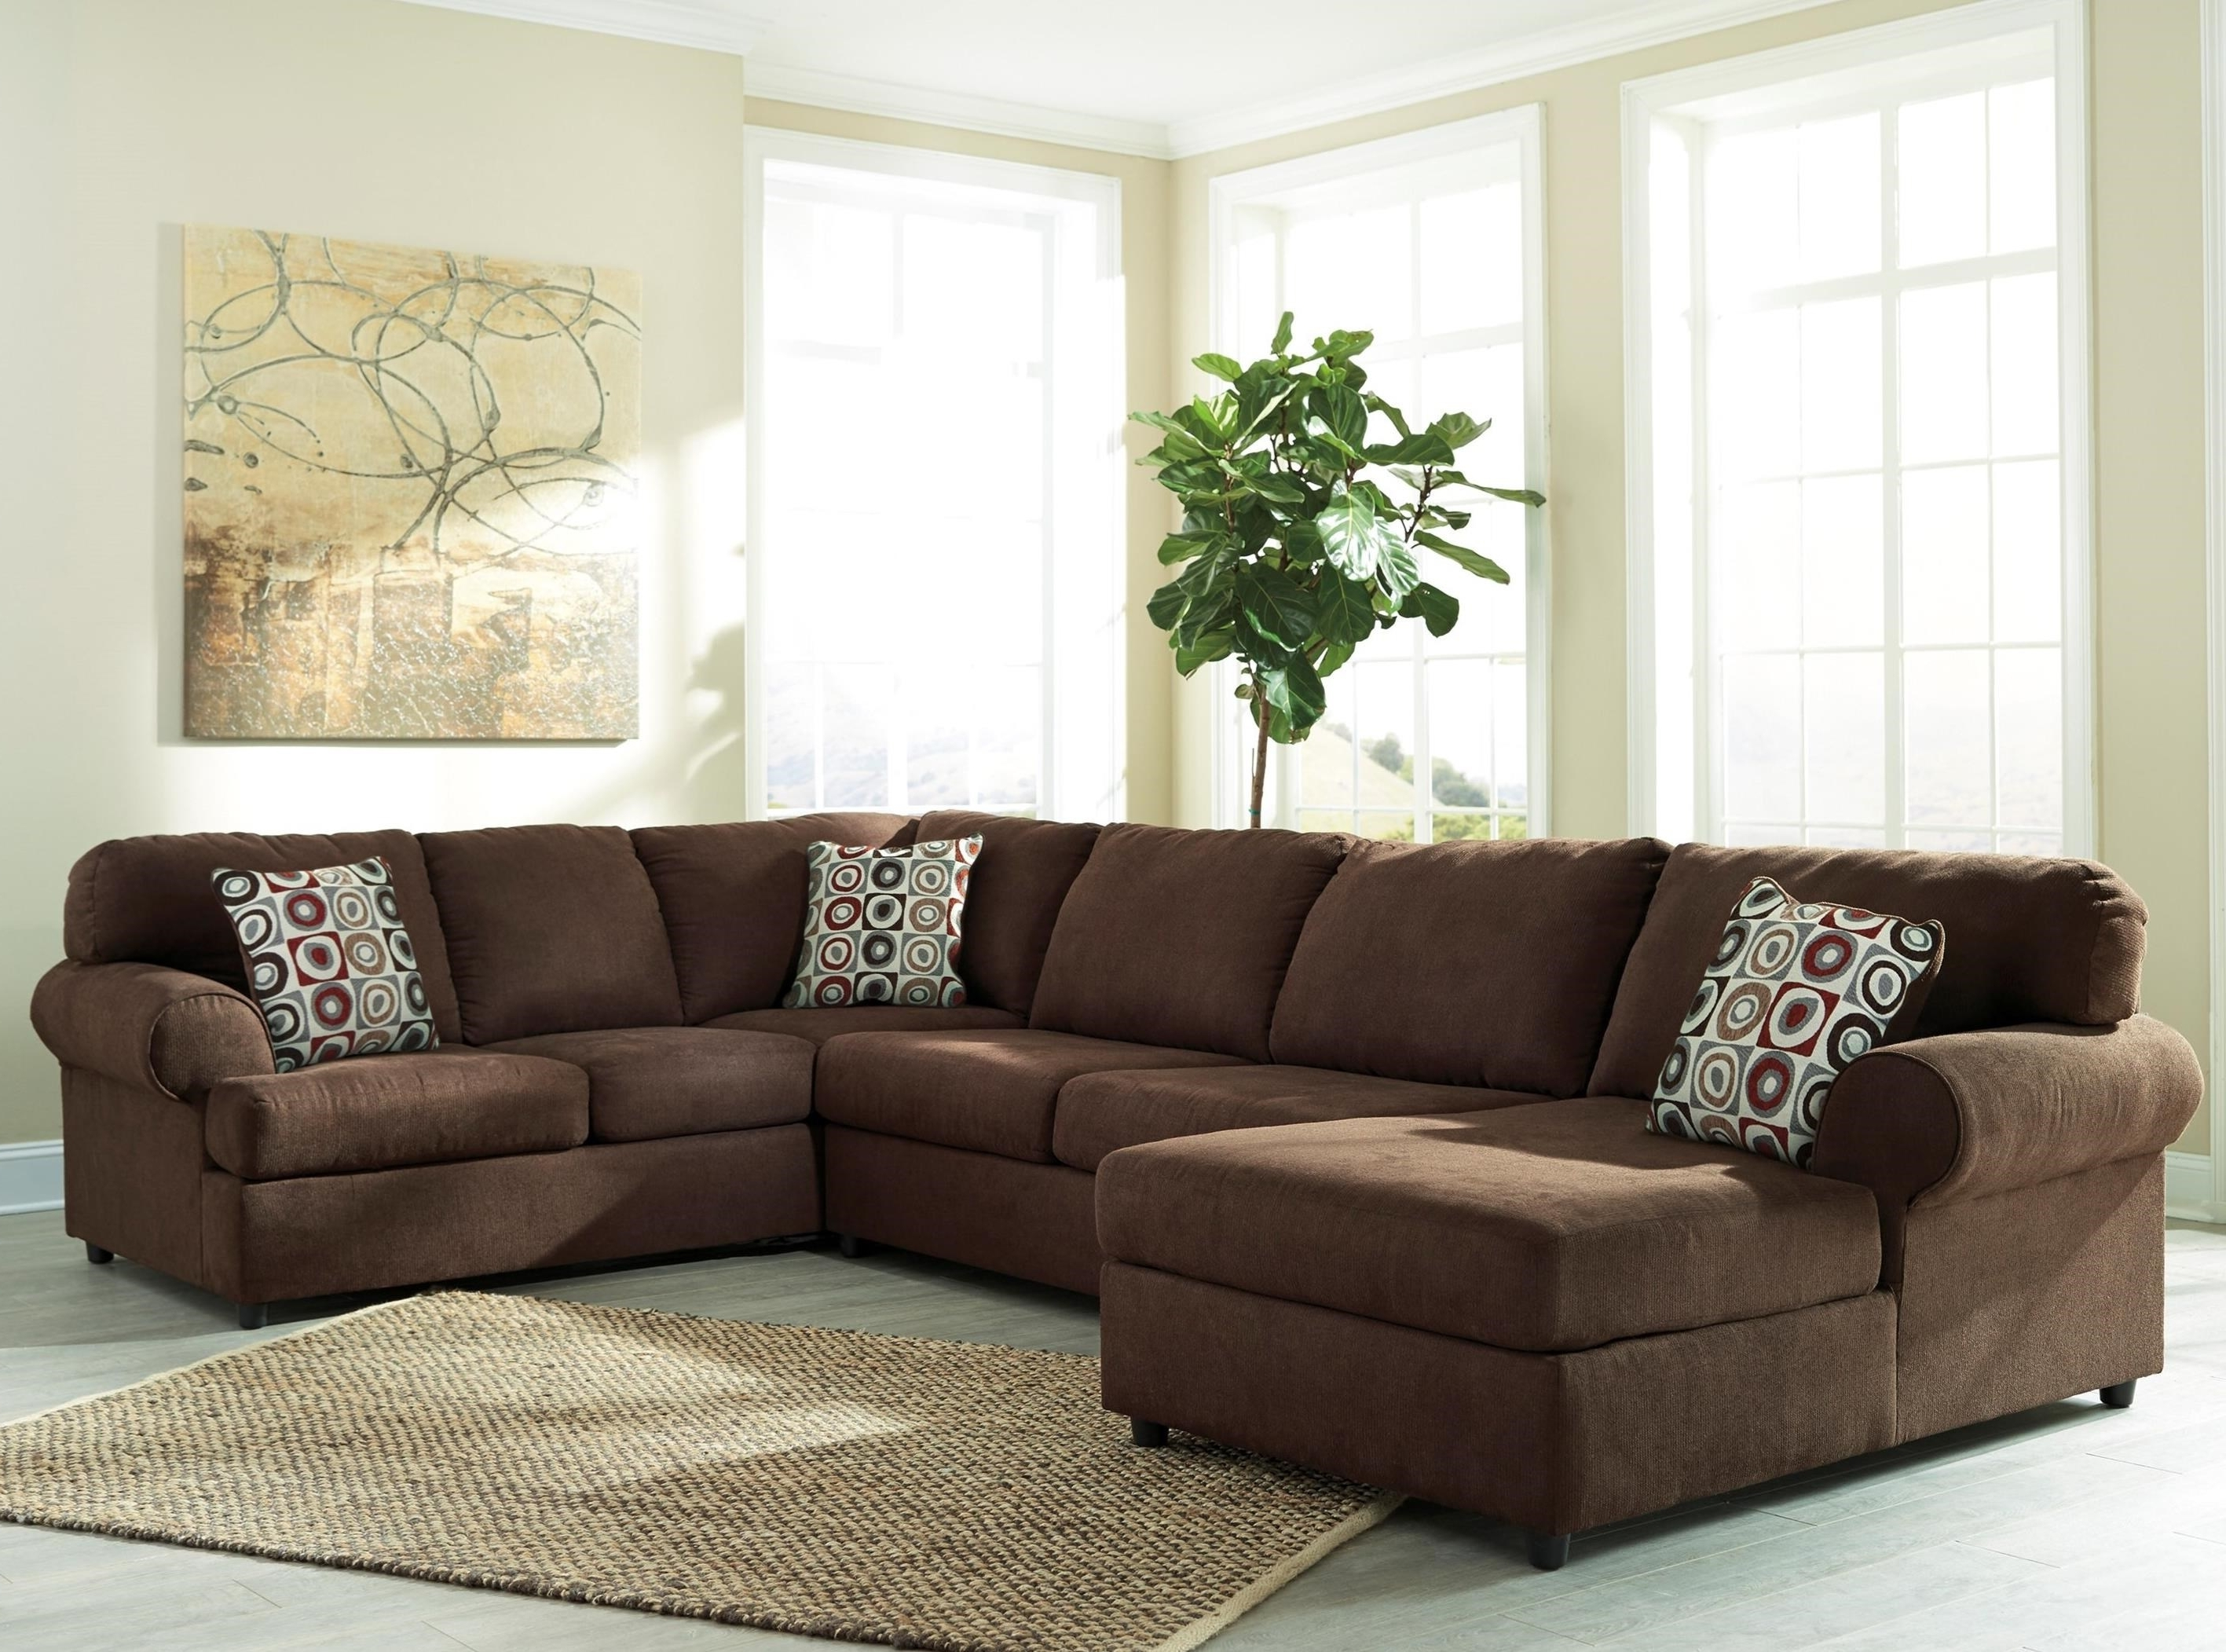 3 Piece Sectional Sofas With Chaise Within Well Known Signature Designashley Jayceon 3 Piece Sectional With Left (View 5 of 15)